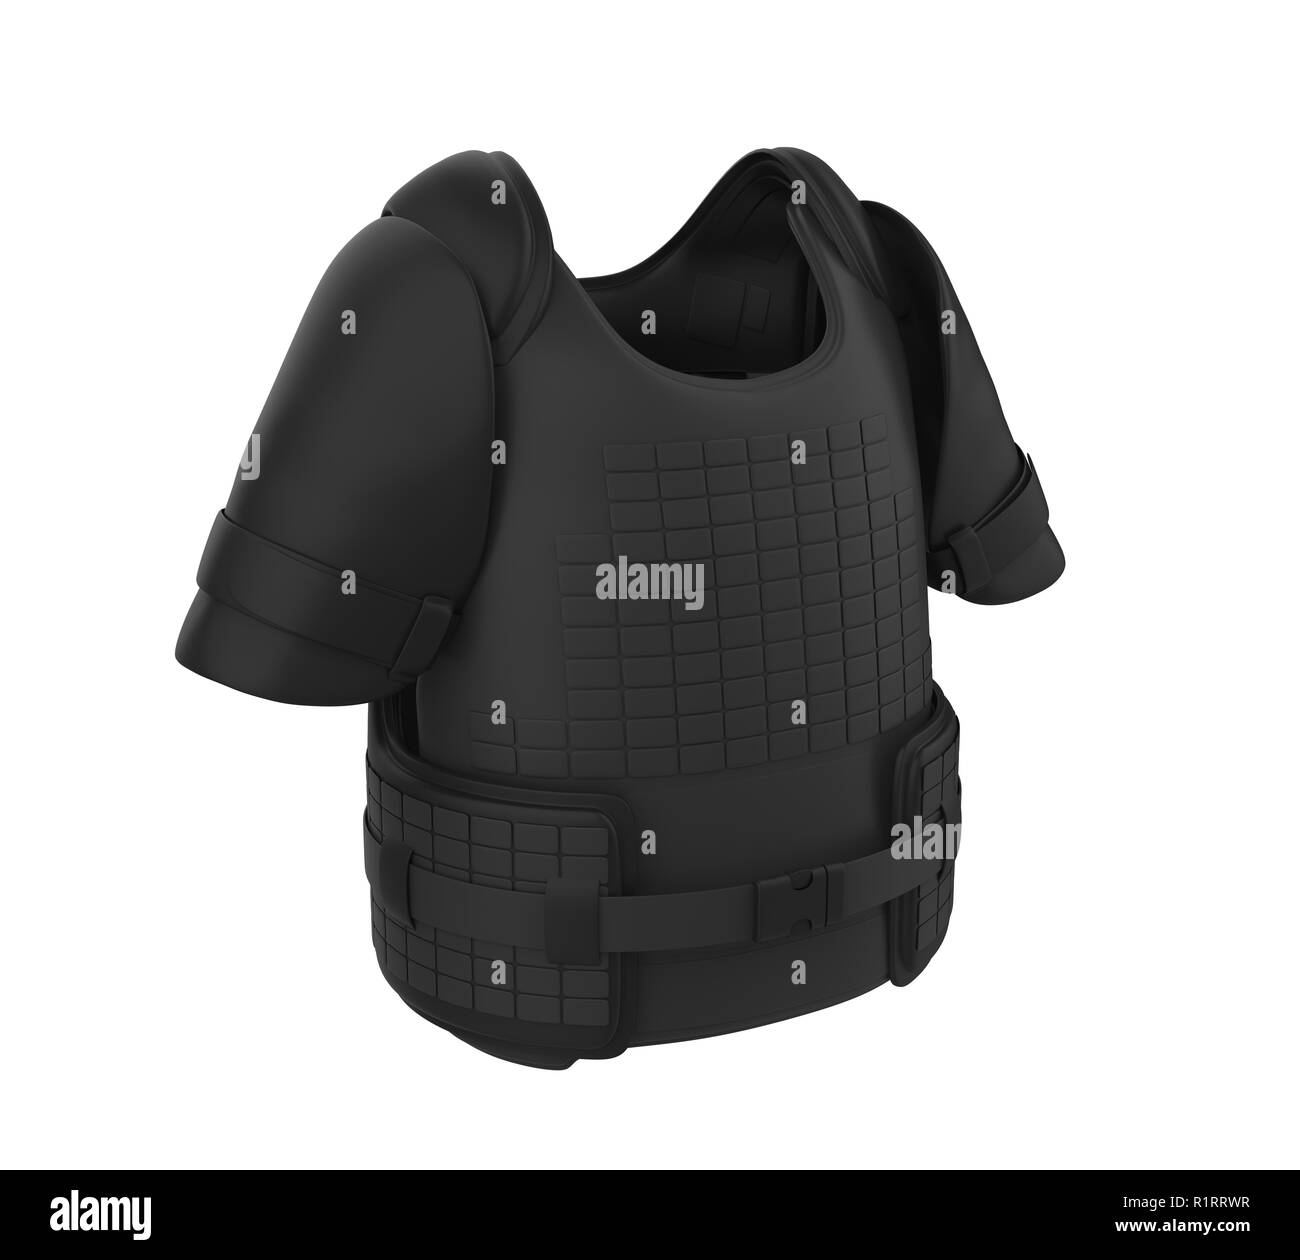 Bullet Proof Vest Isolated - Stock Image